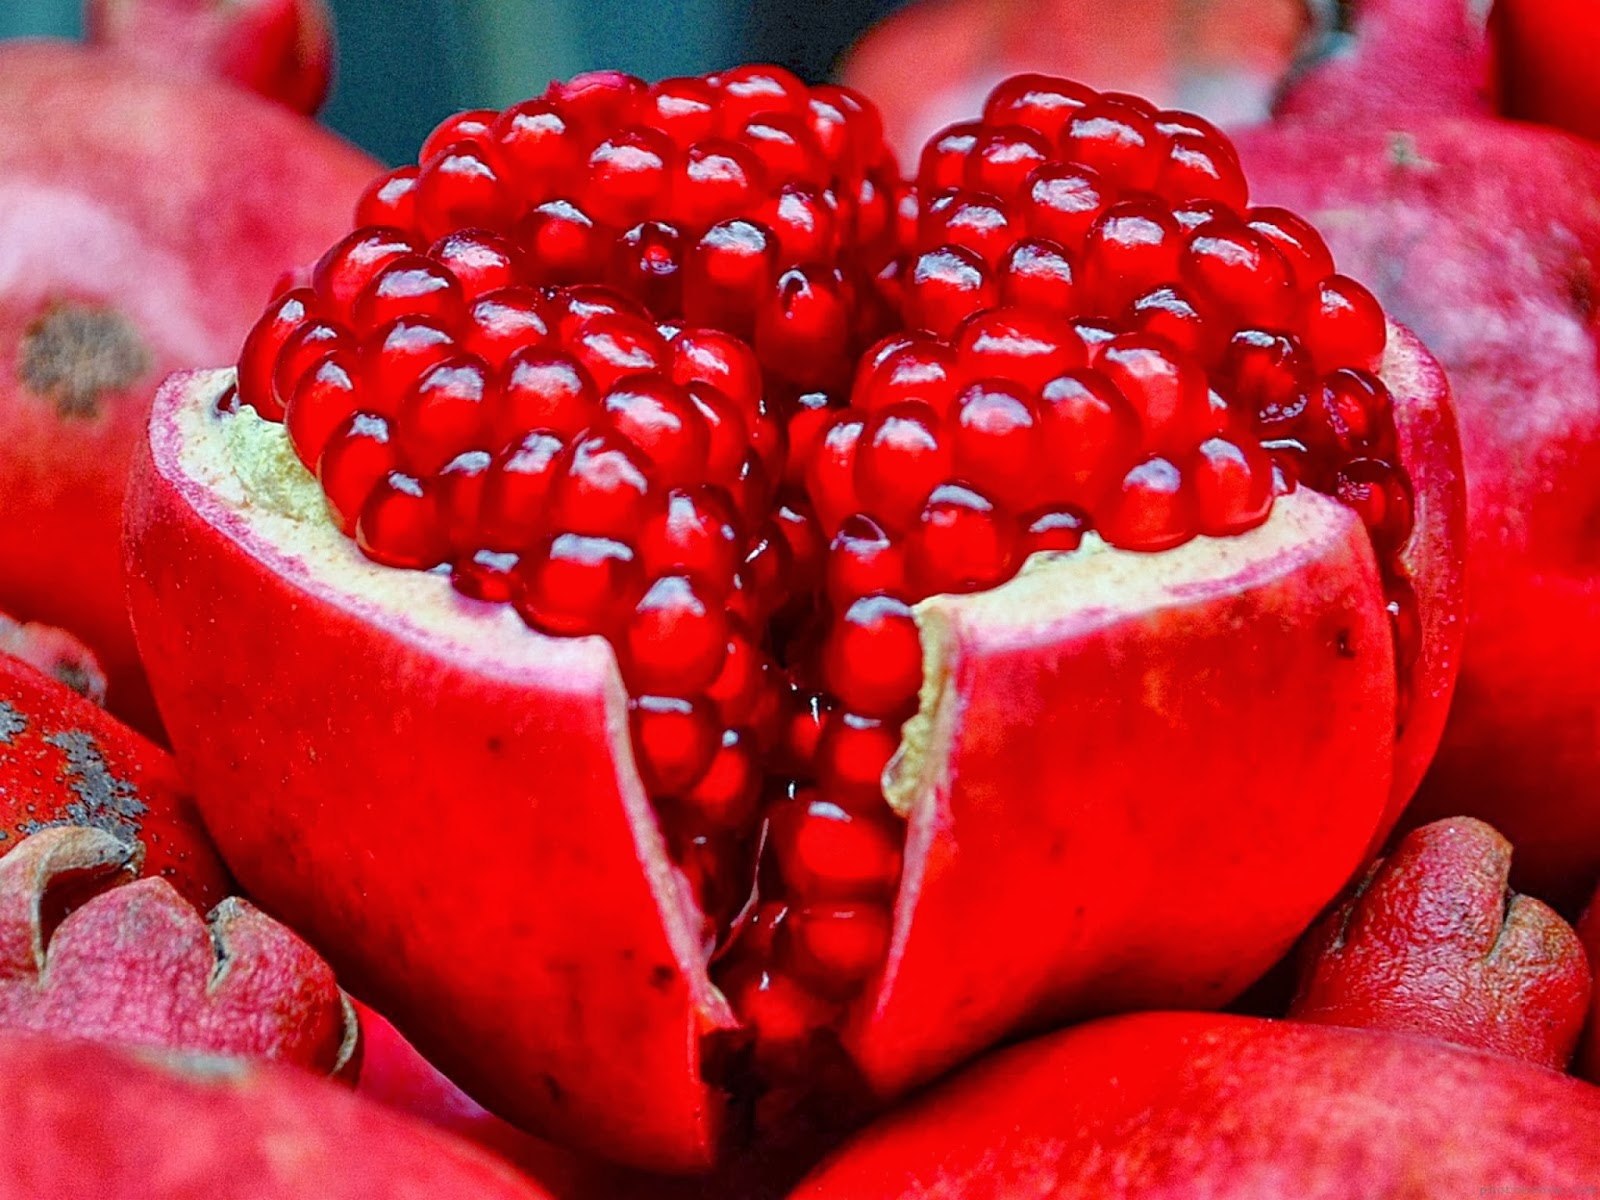 HD Wallpapers Desktop Fruits HD Wallpapers 1600x1200